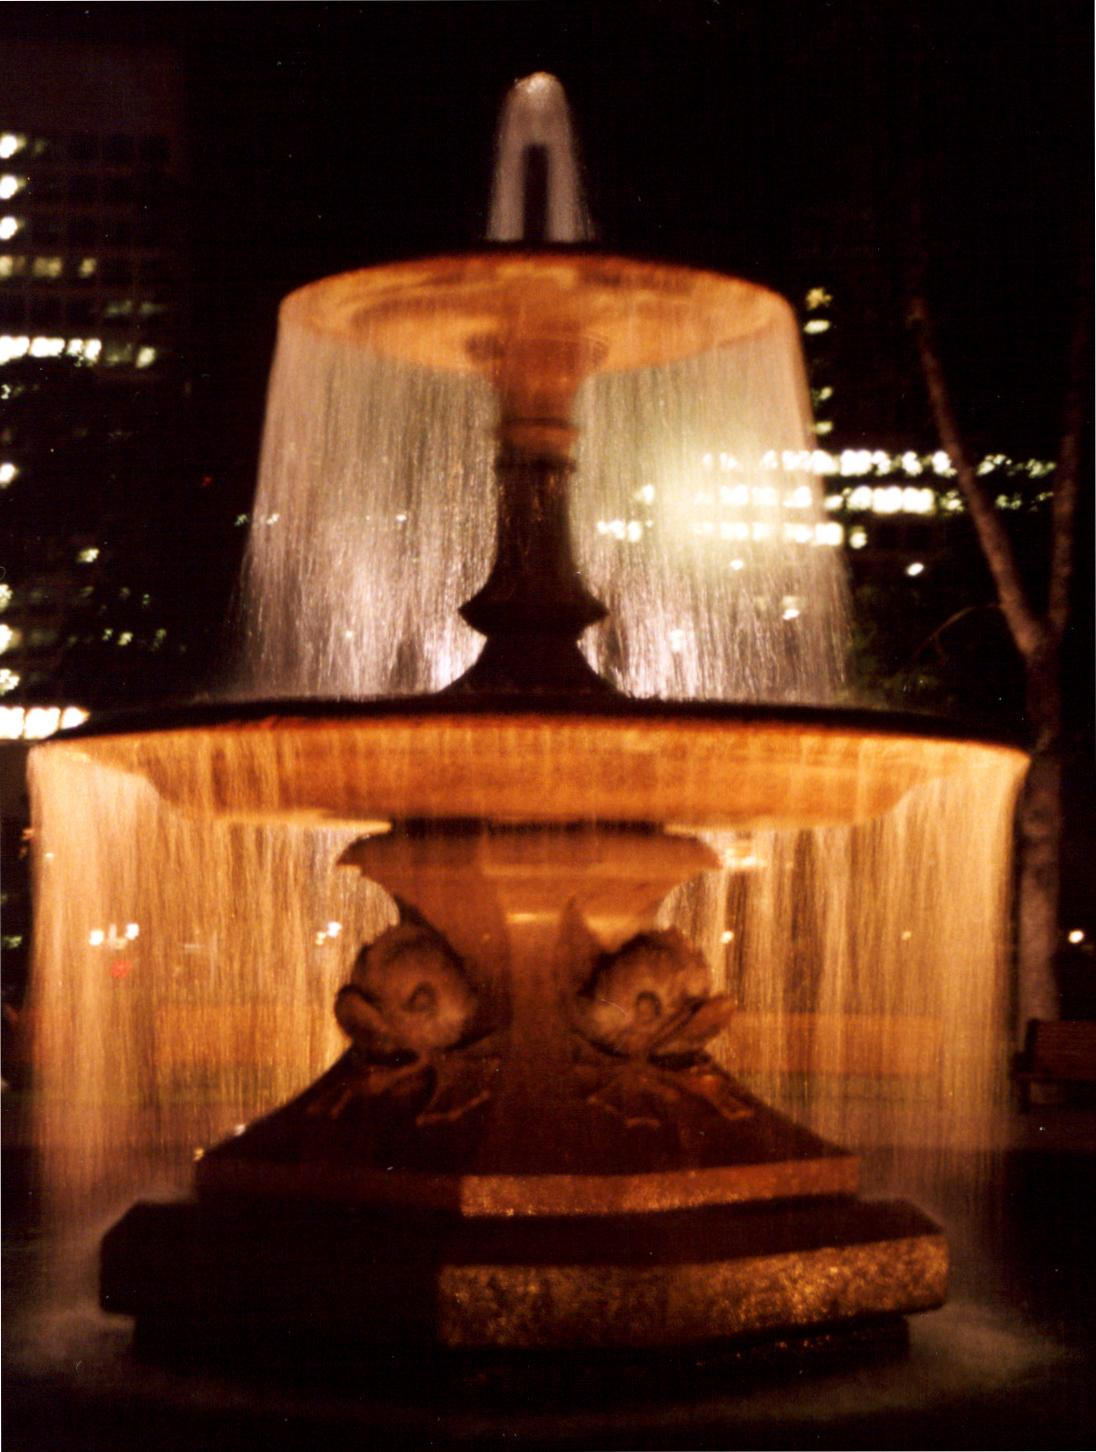 fountain at the confederation park night autho laverdiere marc andre